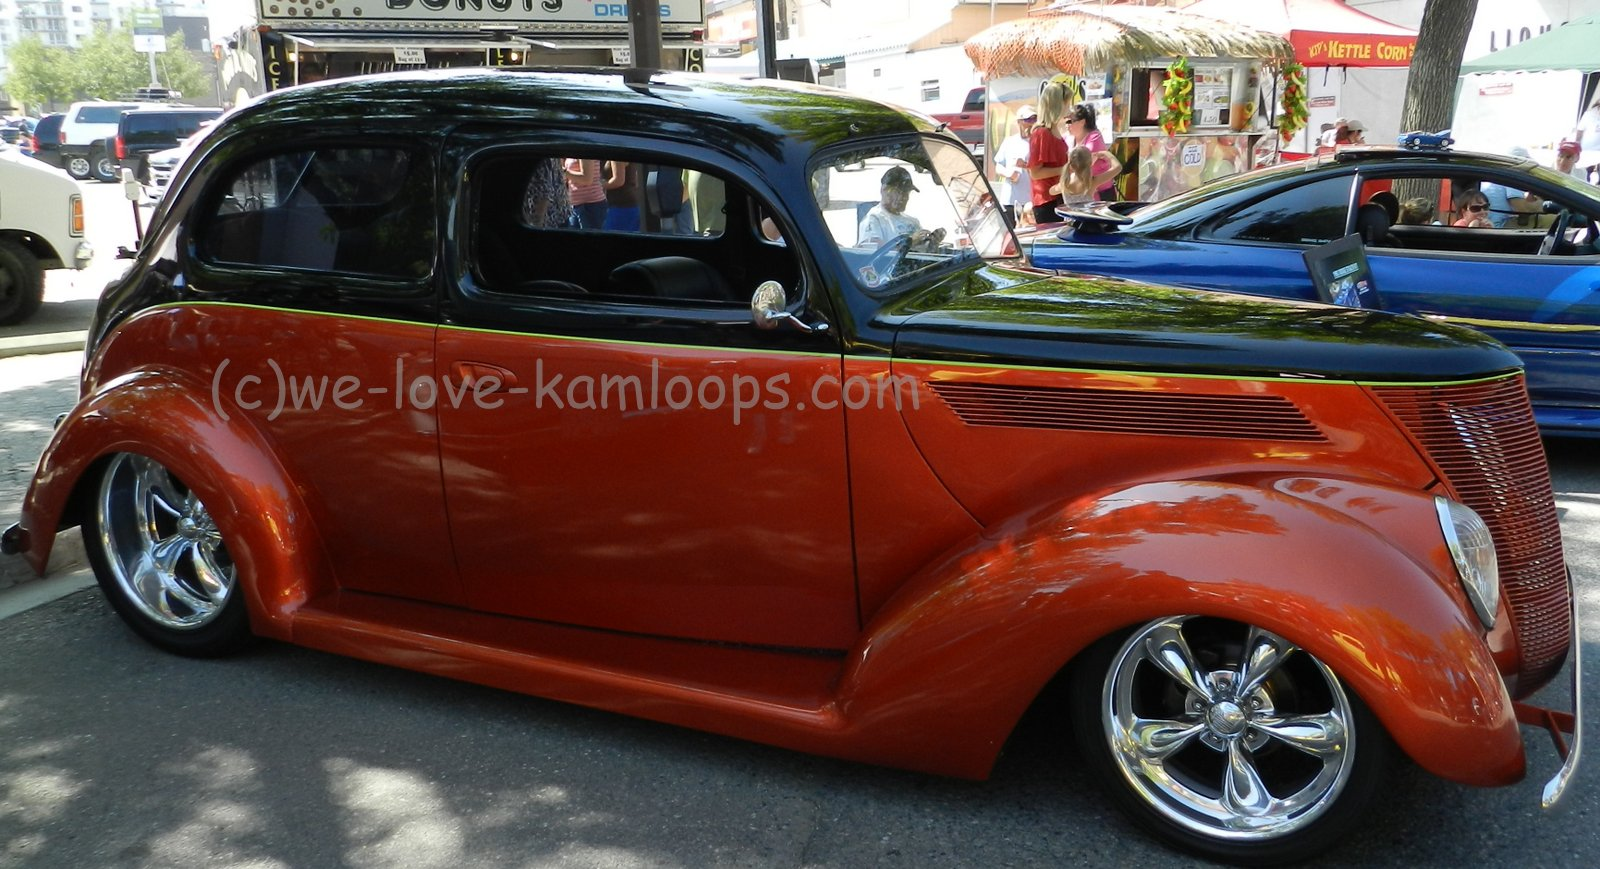 We love kamloops aug 12 2012 for 1937 ford 4 door humpback